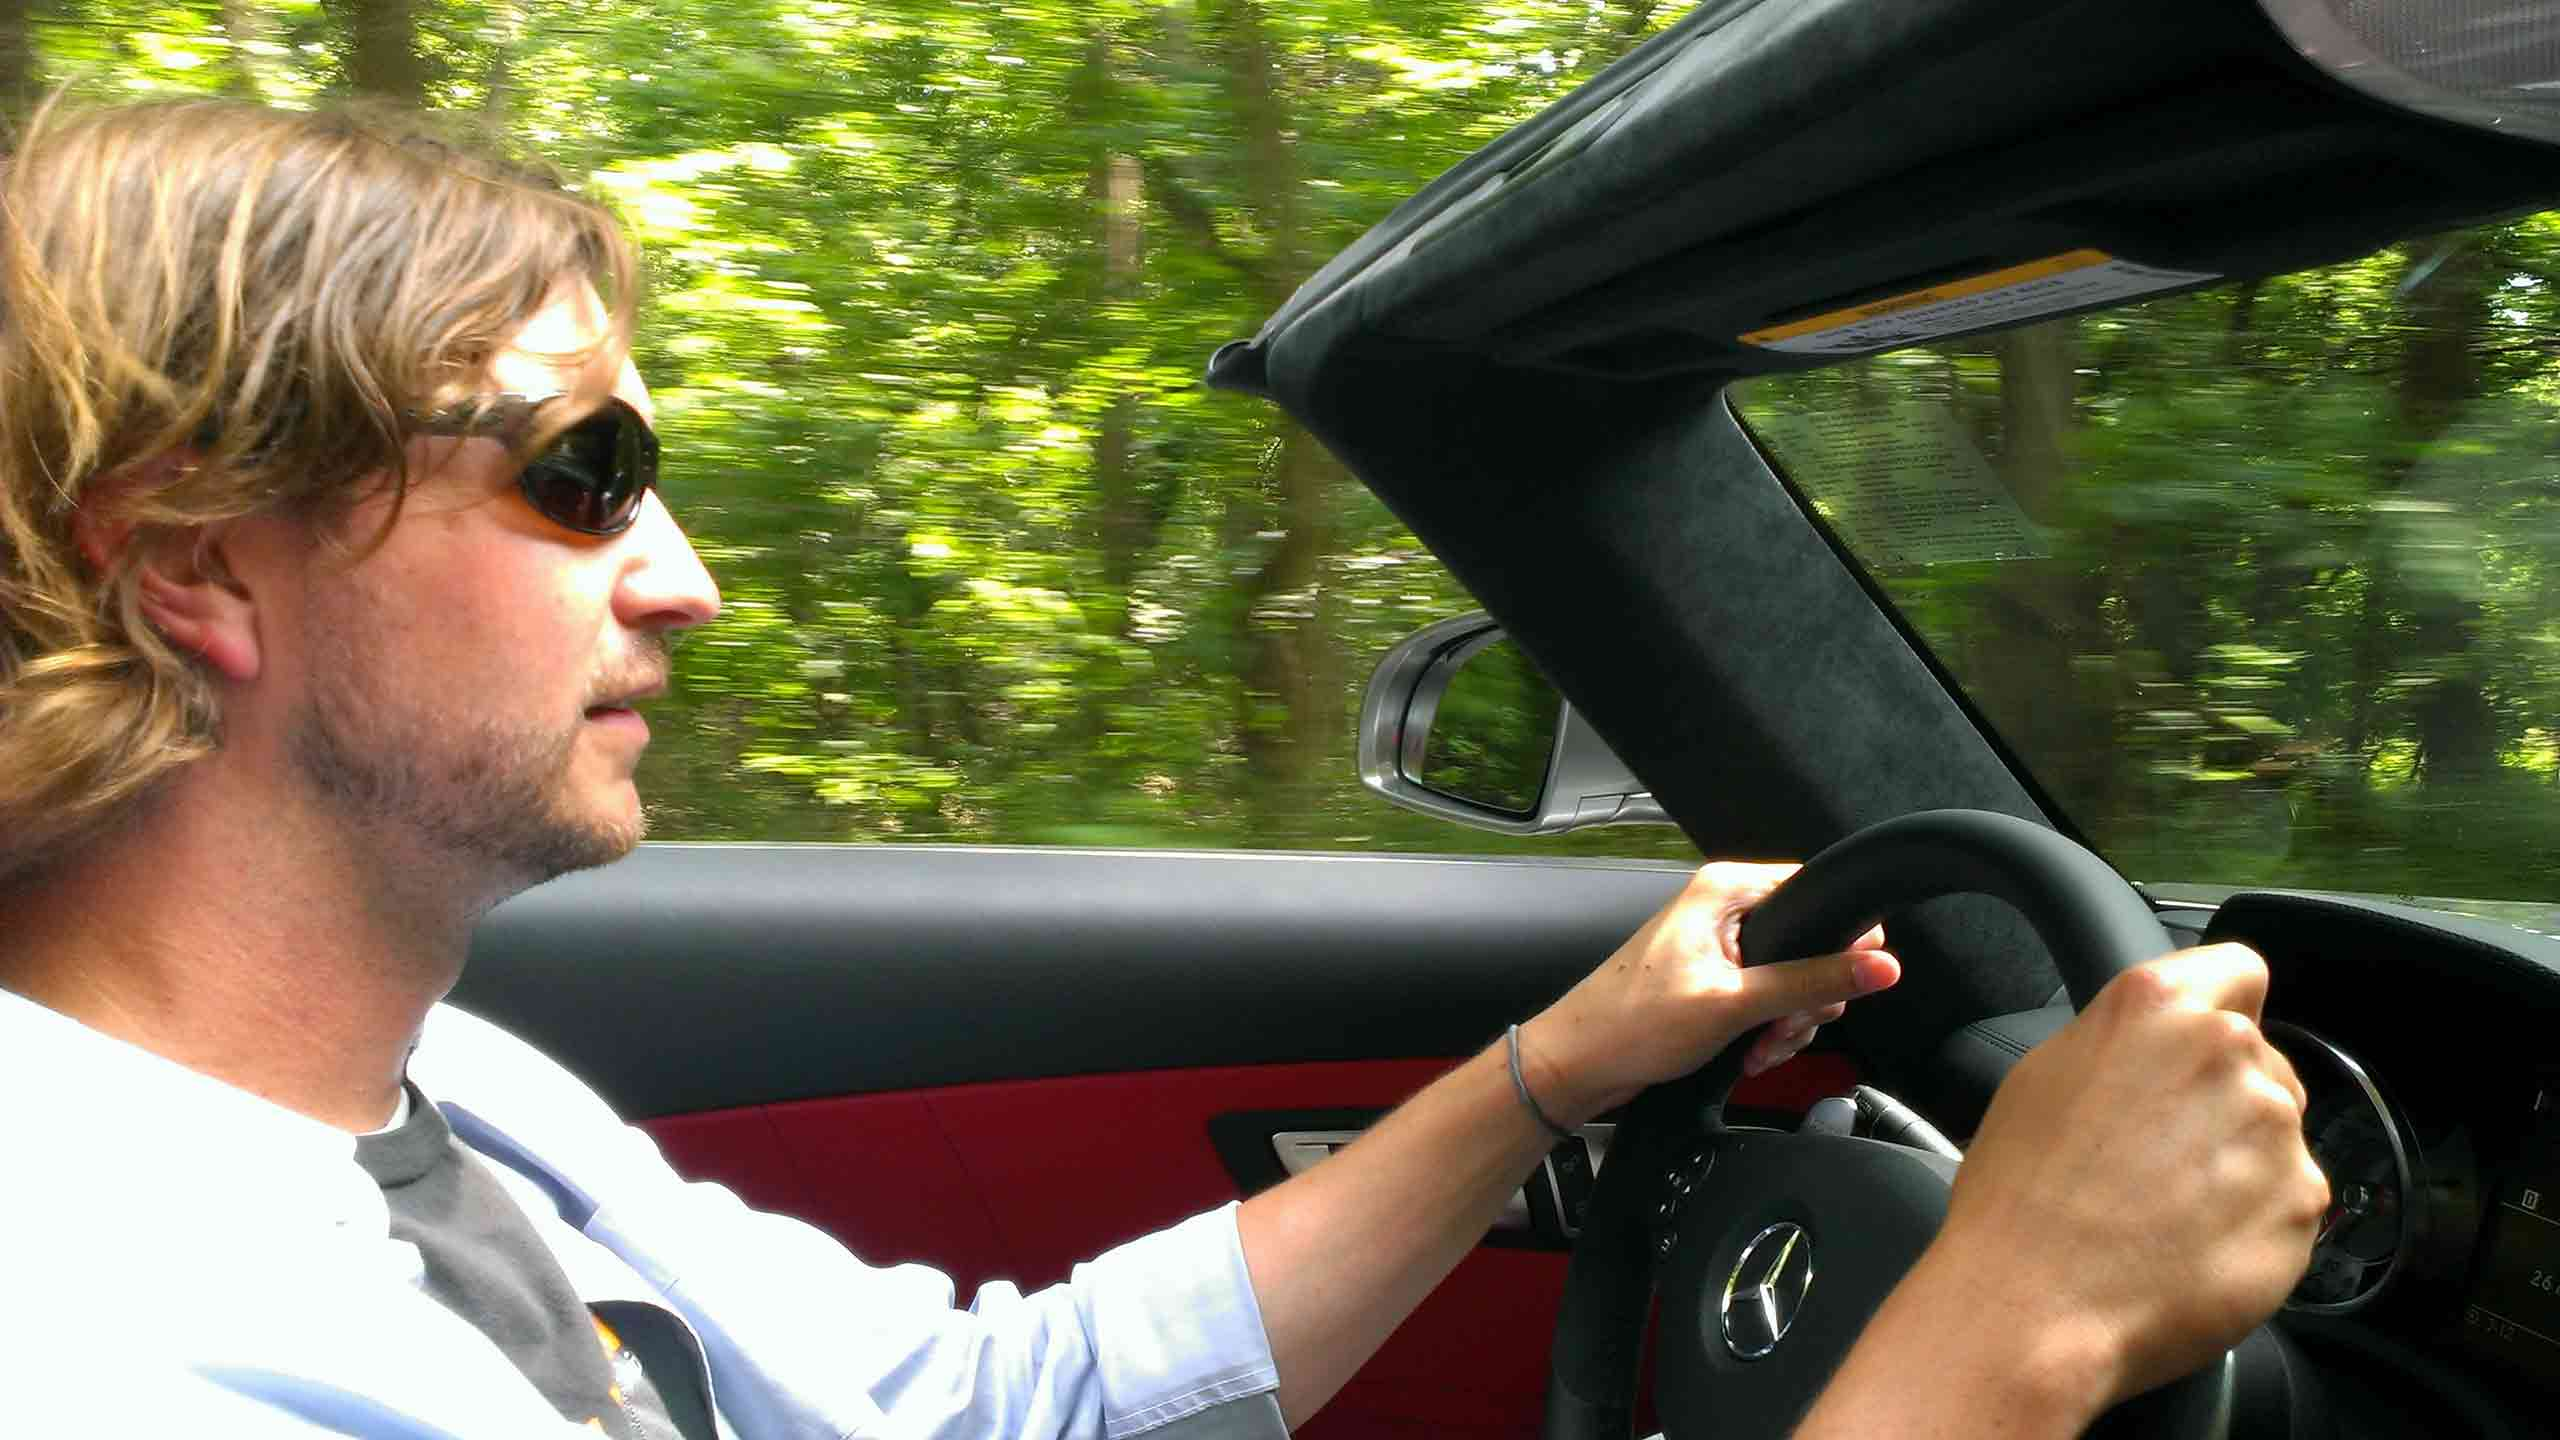 Driving an SLS AMG Roadster